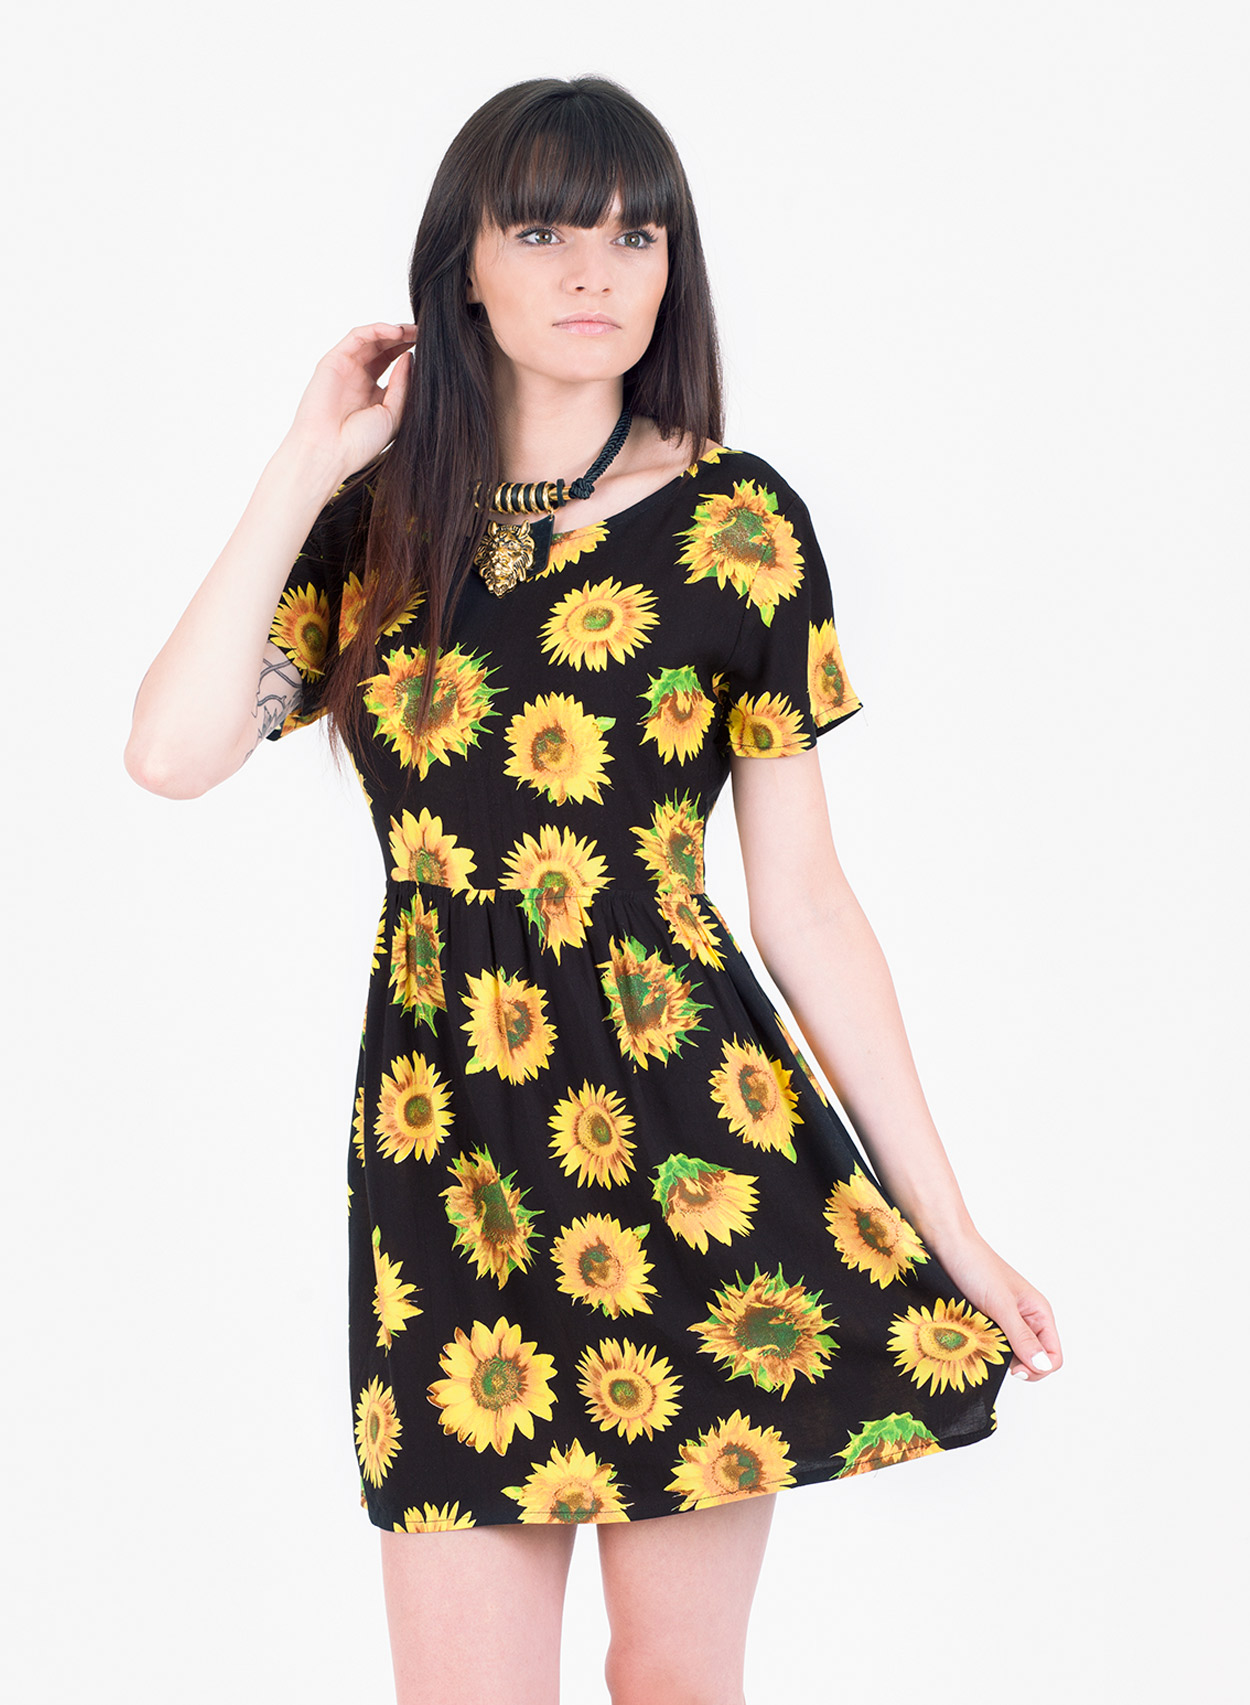 Sunflower Dress Picture Collection Dressed Up Girl